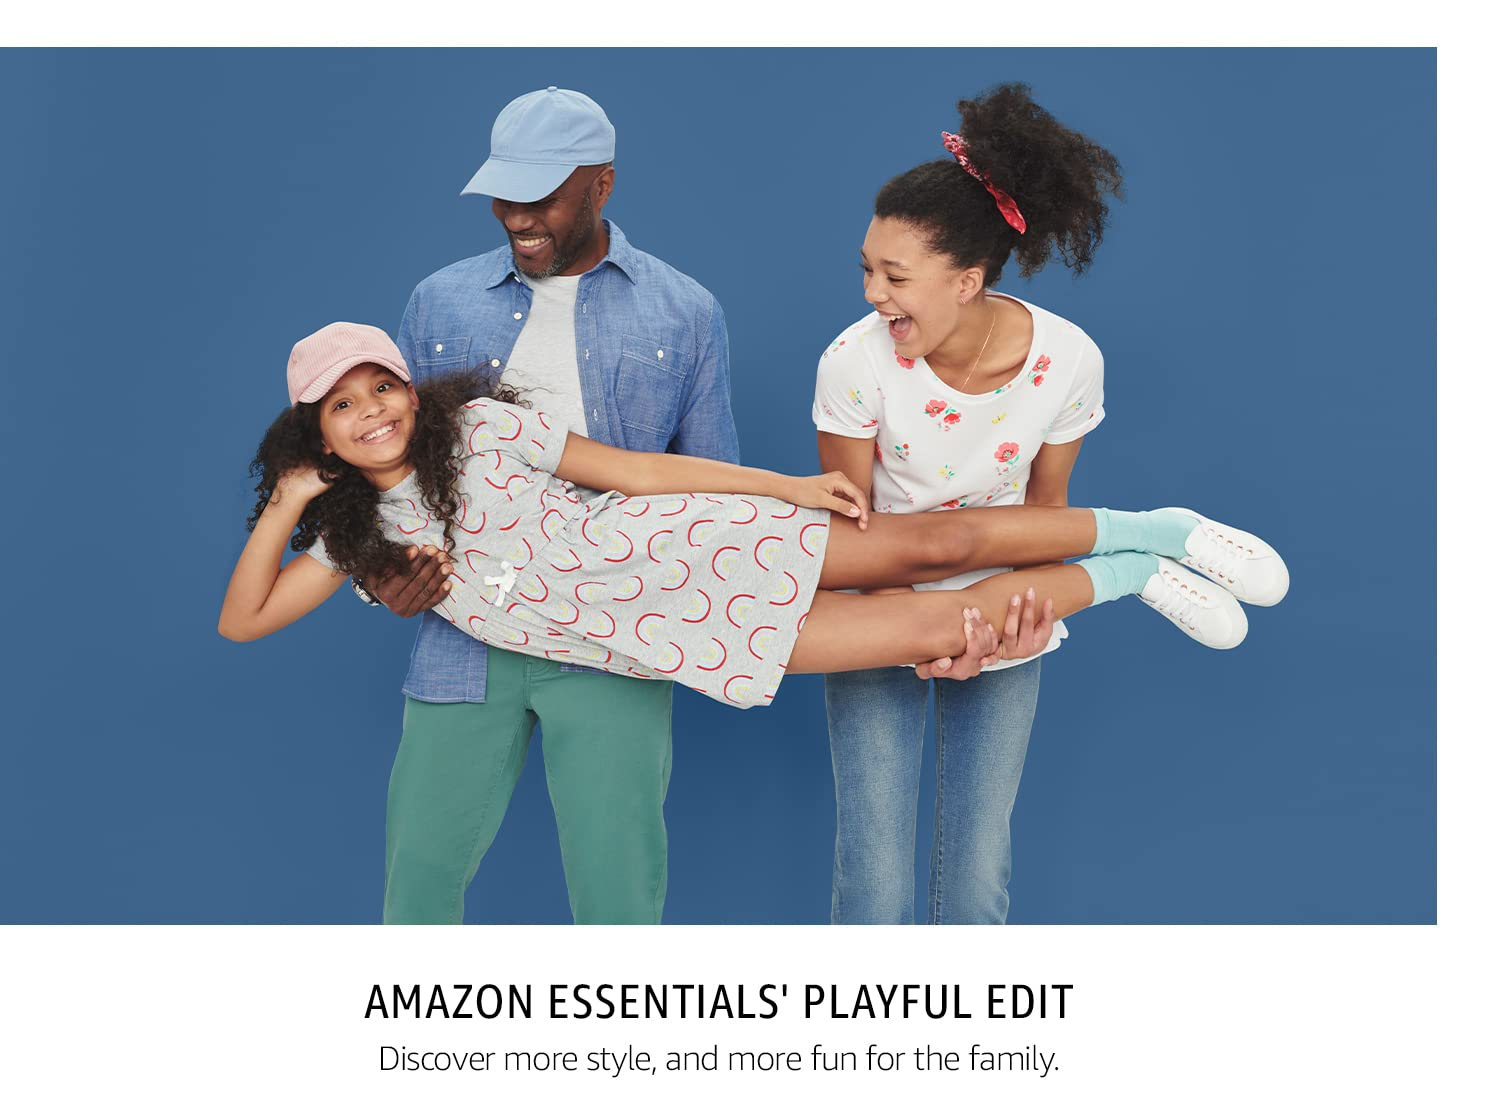 Amazon Essentials' Playful Edit